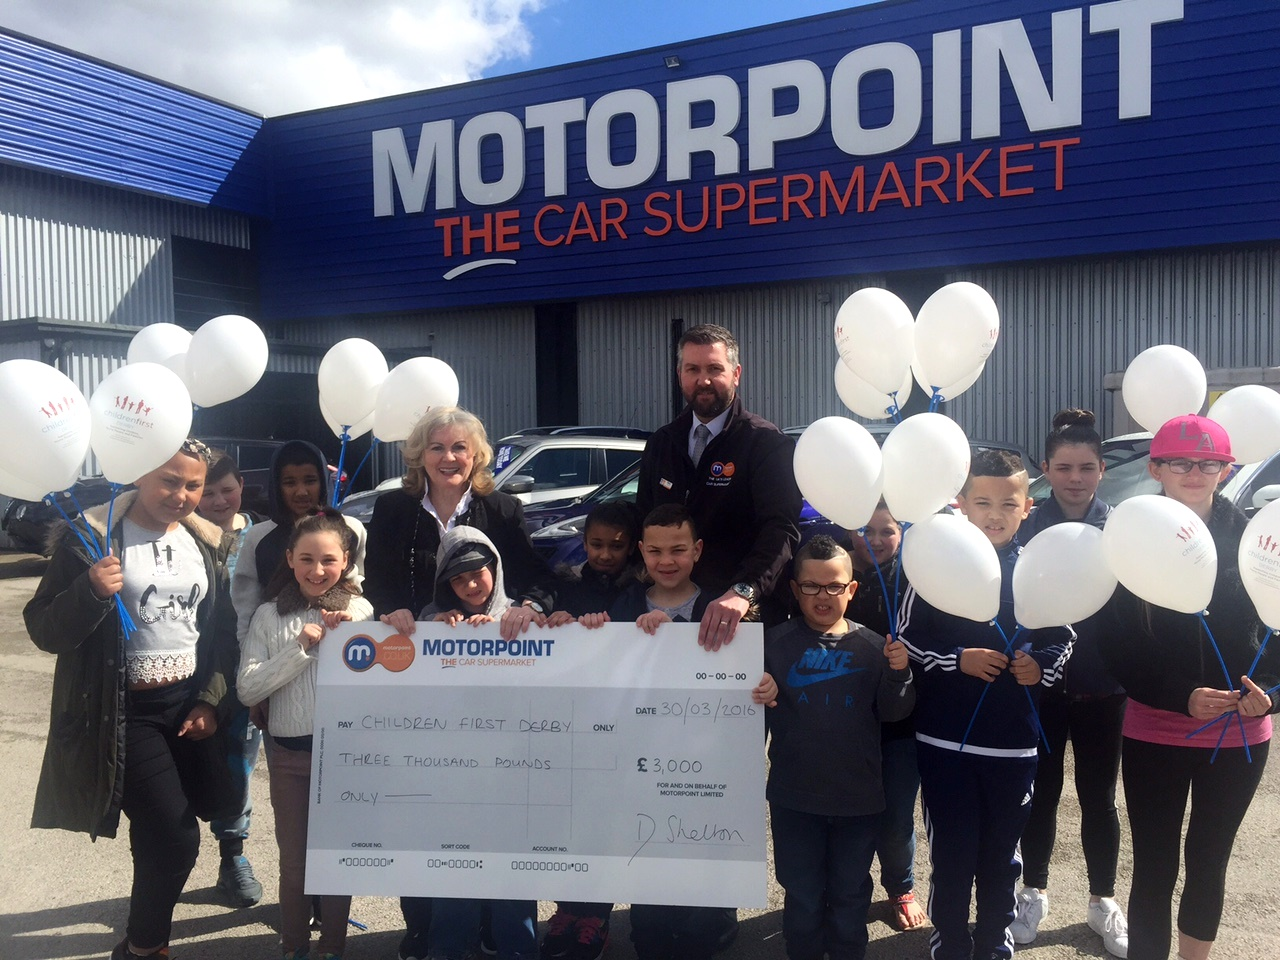 Motorpoint is backing the Children First Derby Ball at the iPro Stadium in October